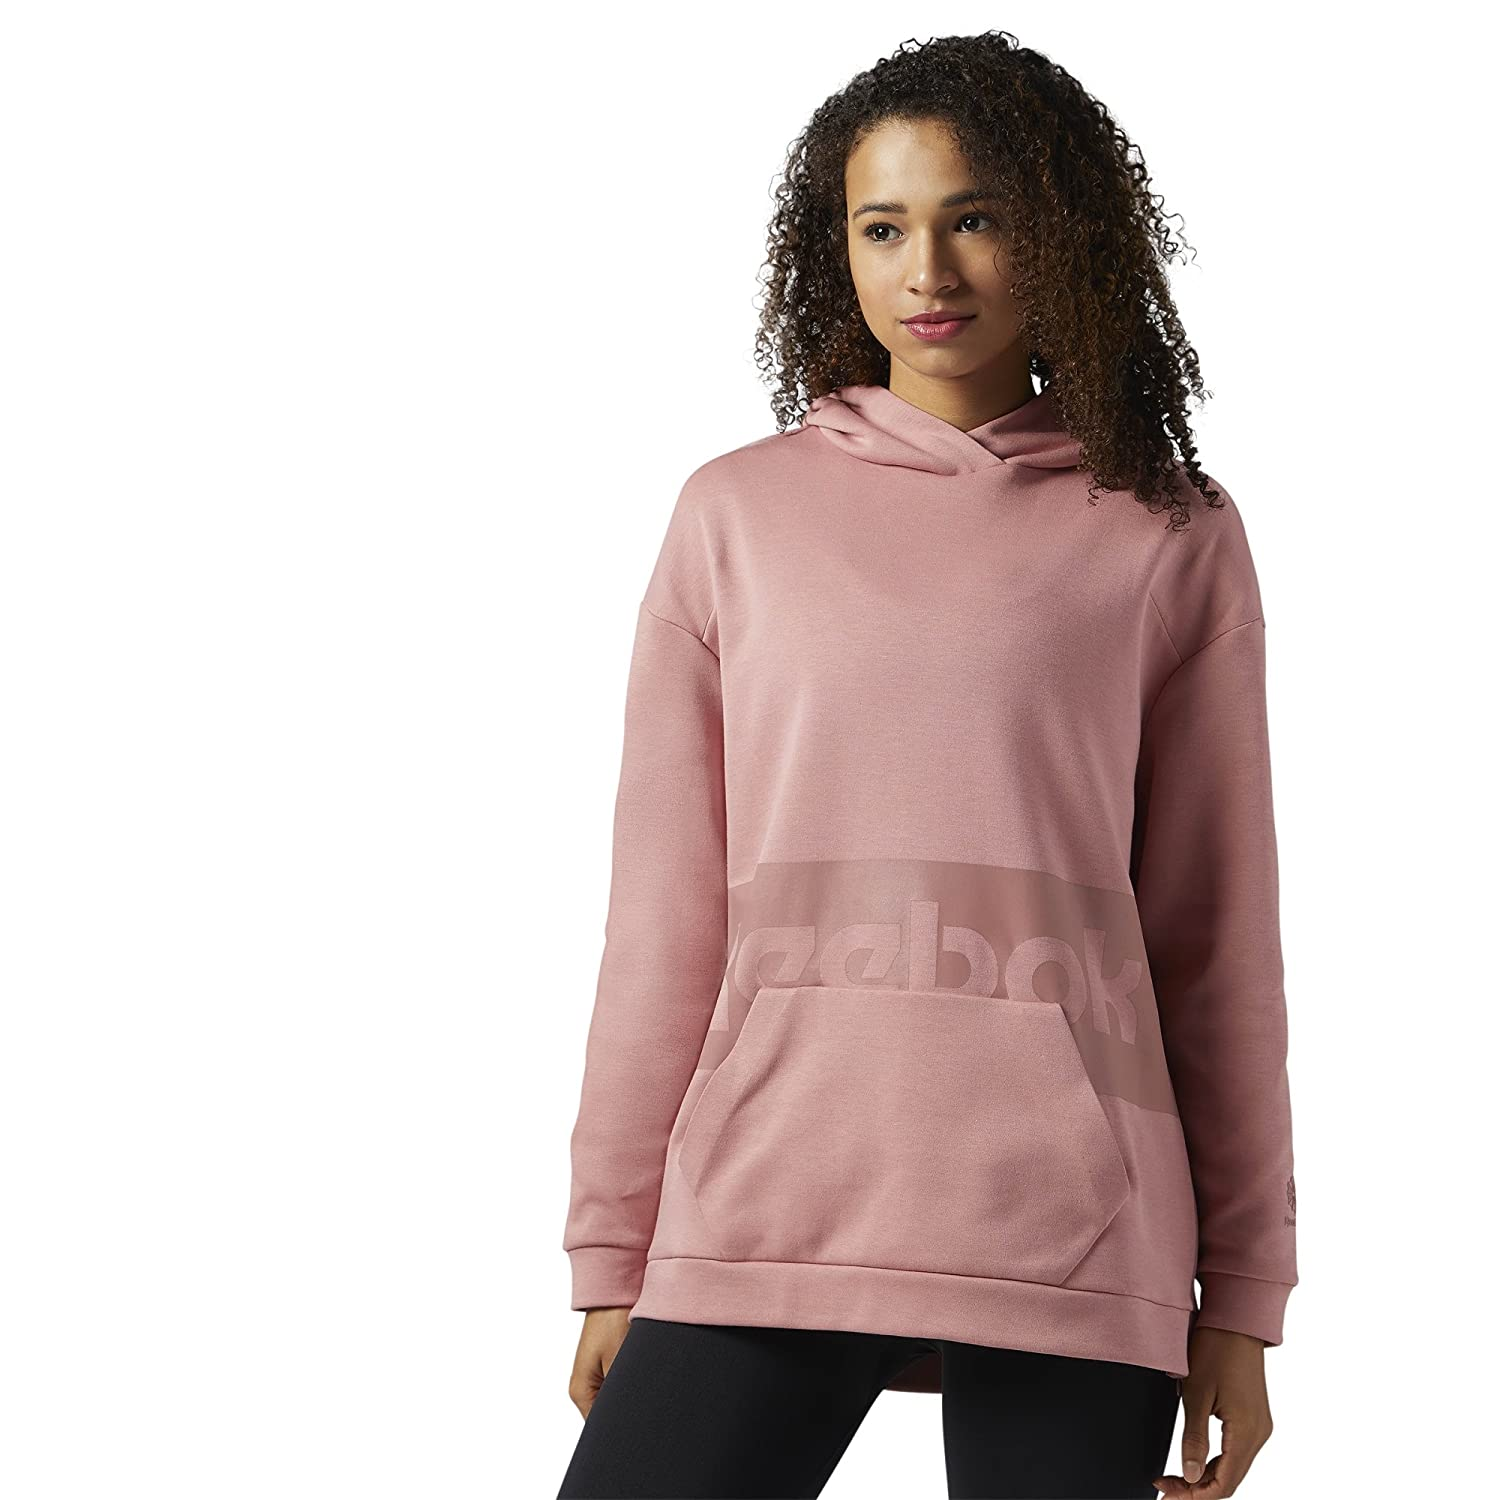 Reebok Classic Women's Dc Tech Over The Head Hoodie BS3410